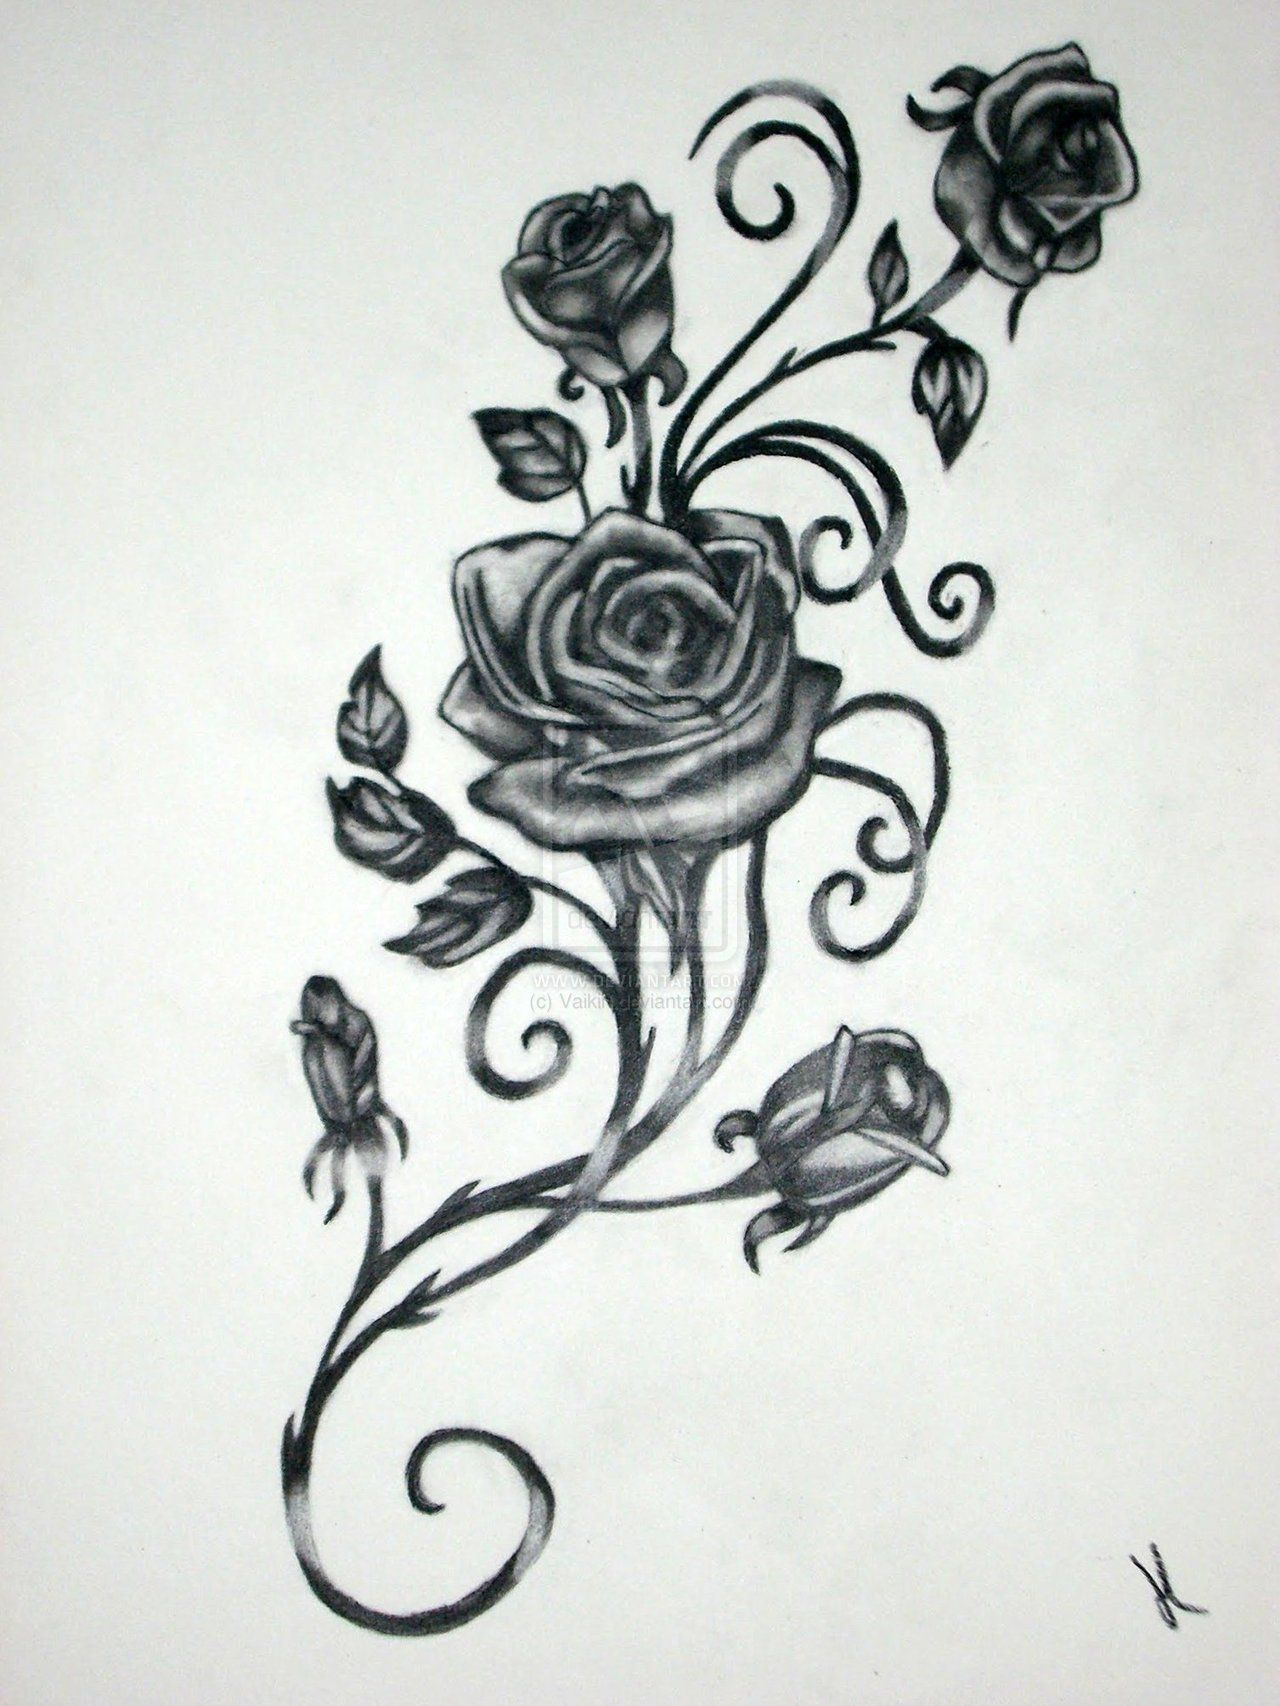 Black tattoo cover up ideas roses with vines drawing  rose vine drawing black rose vine tattoos